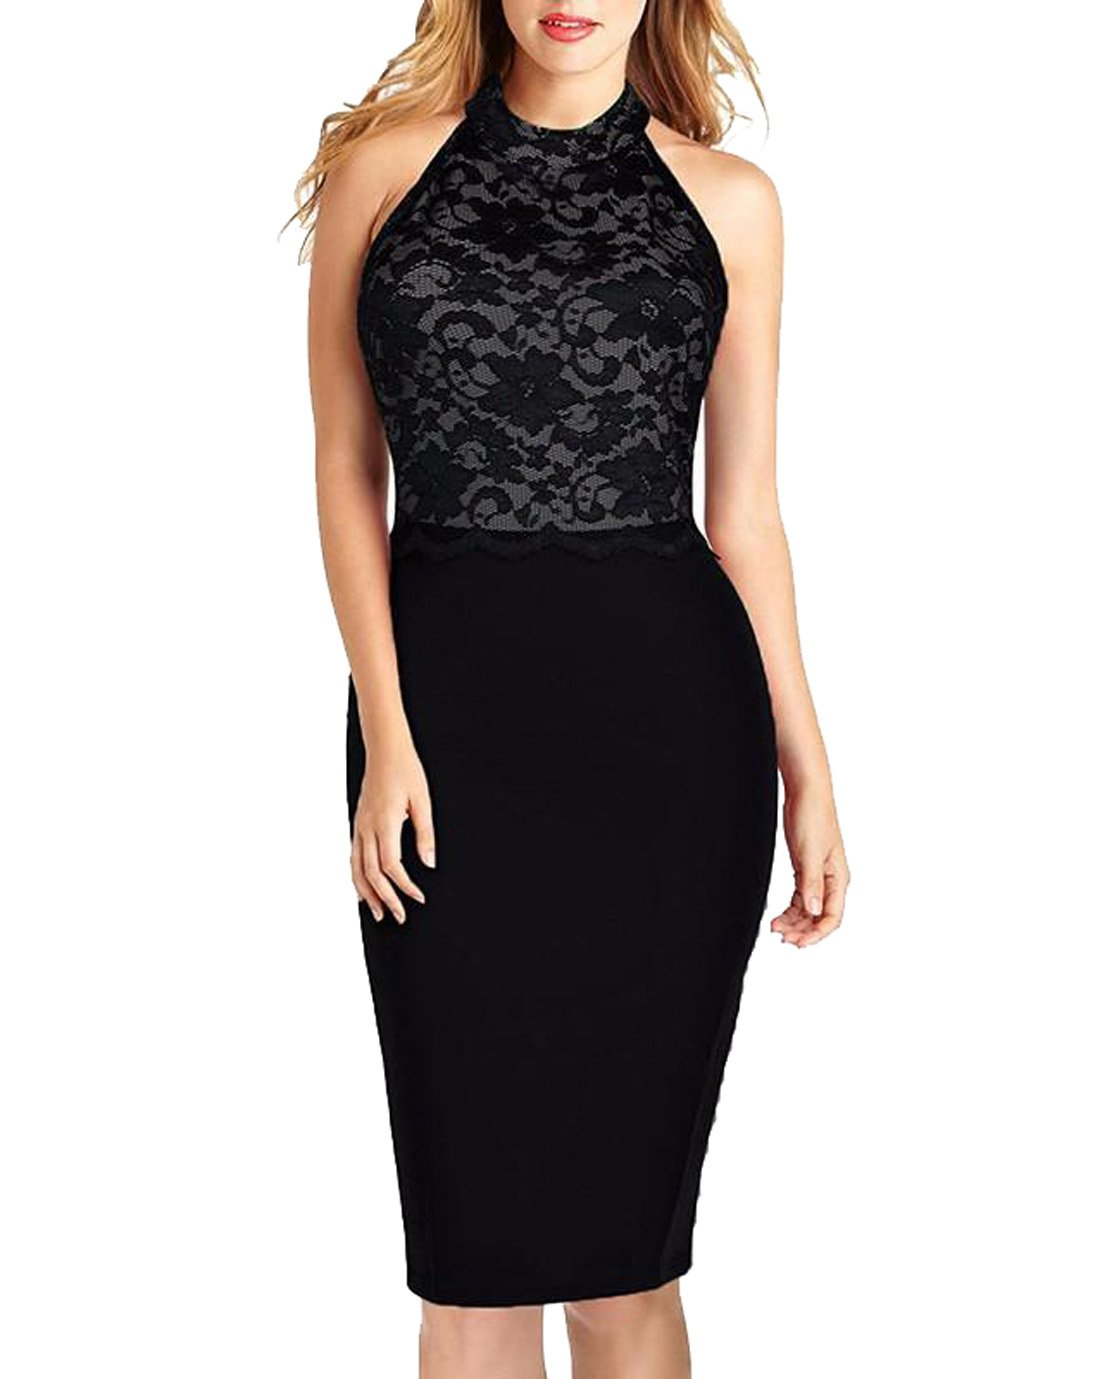 HELYO Women's Formal Vintage Lace Cocktail Party Elegant Midi Dresses Homecoming Gownslace 176 (M,Black)